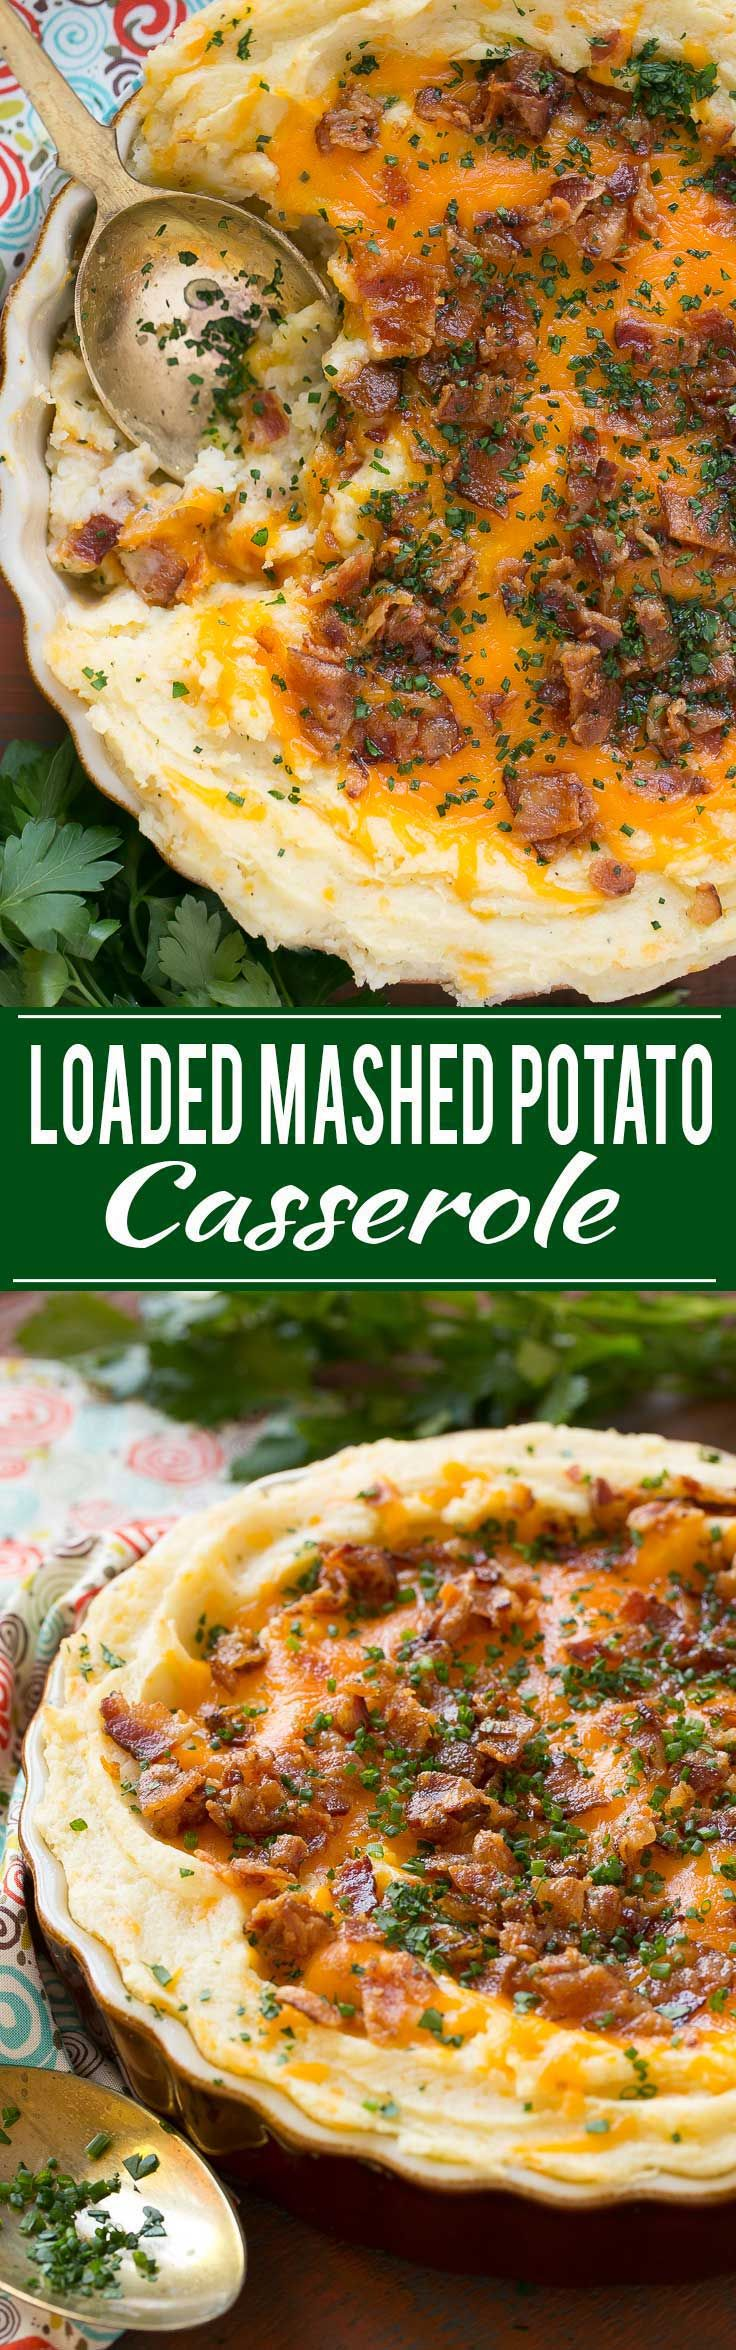 recipe: make ahead potato casserole for a crowd [30]